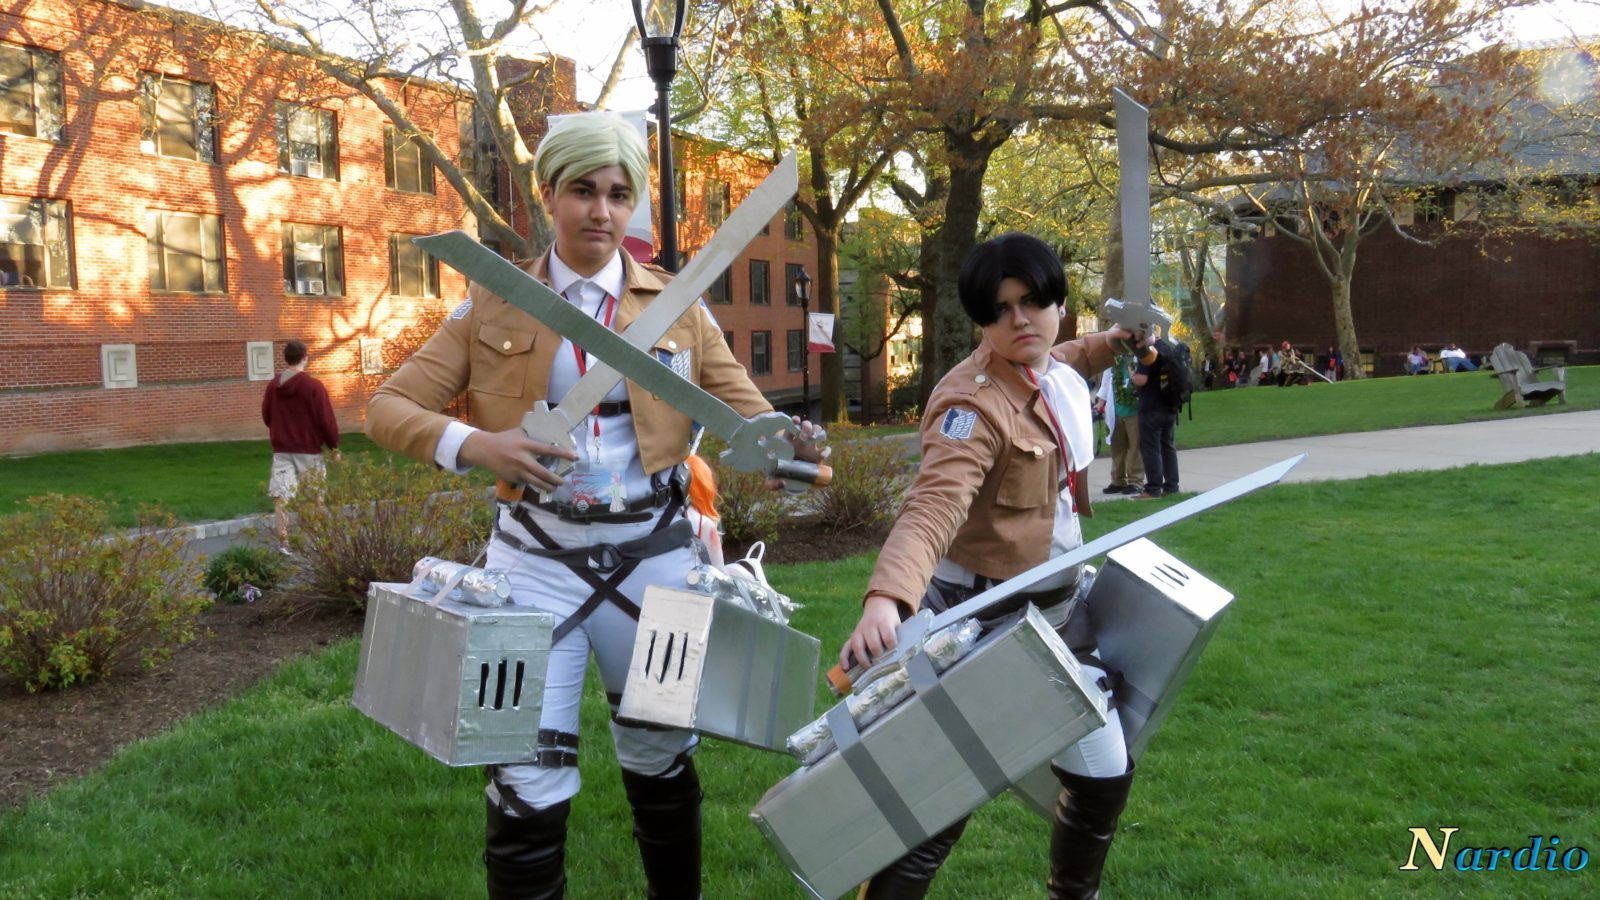 attack-on-titan-cosplay-at-castle-point-anime-convention-004